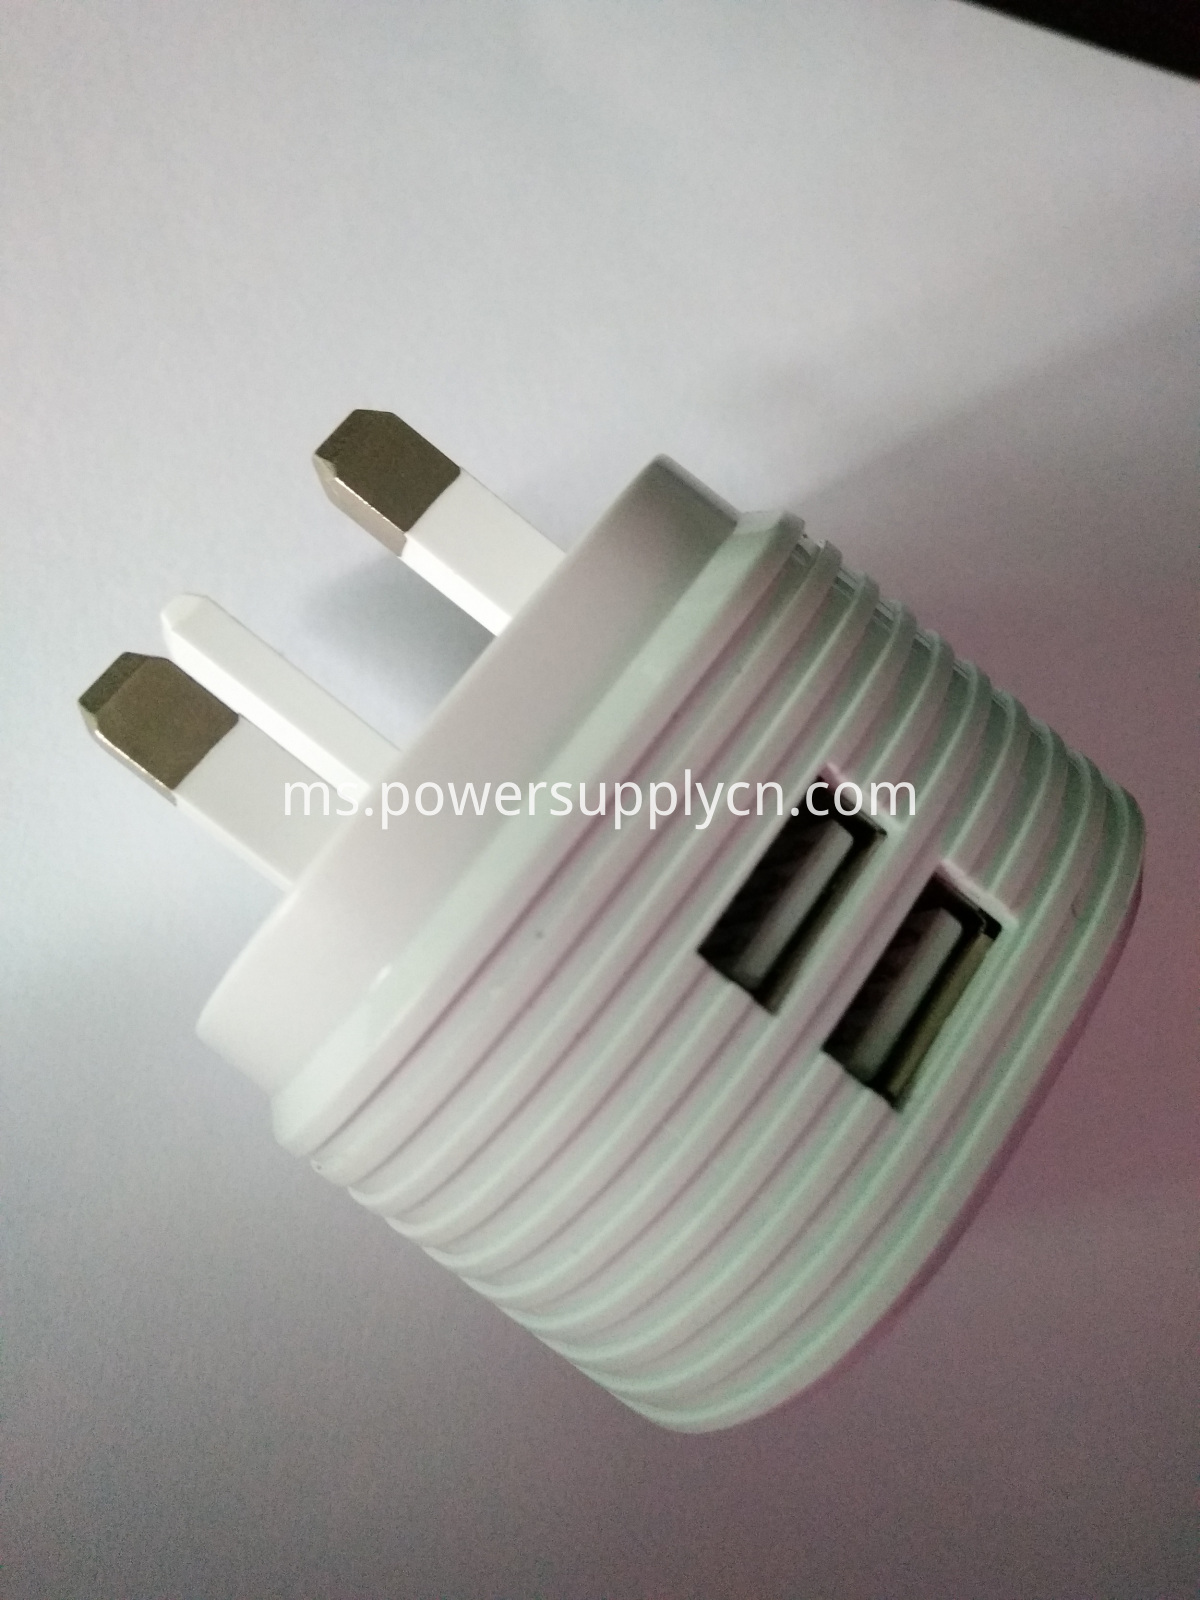 UK plug 2-USB port phone charger